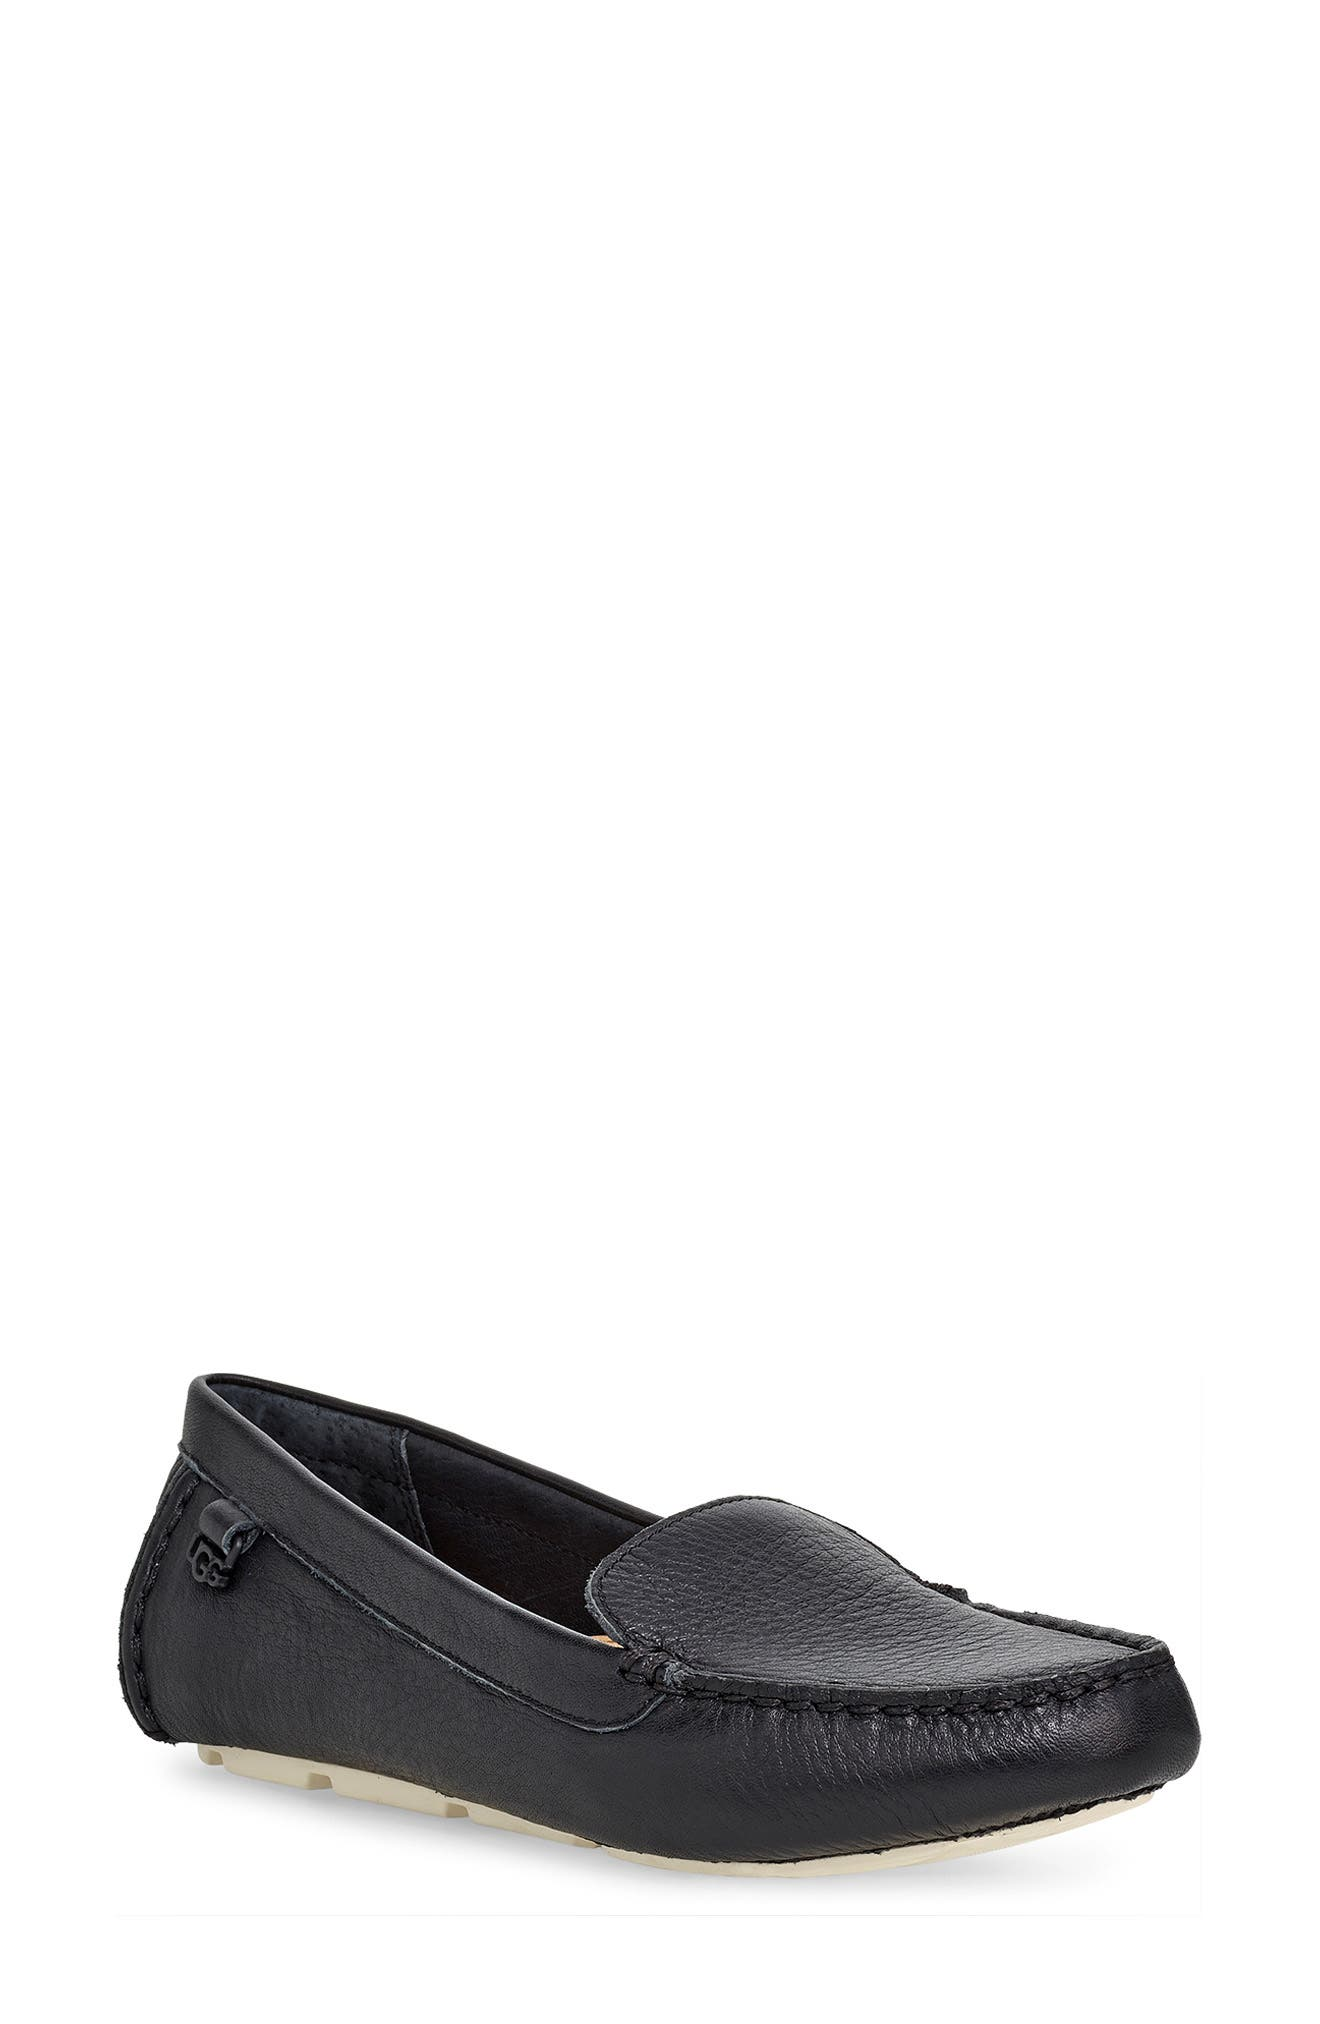 Flores Driving Loafer,                             Main thumbnail 1, color,                             BLACK LEATHER